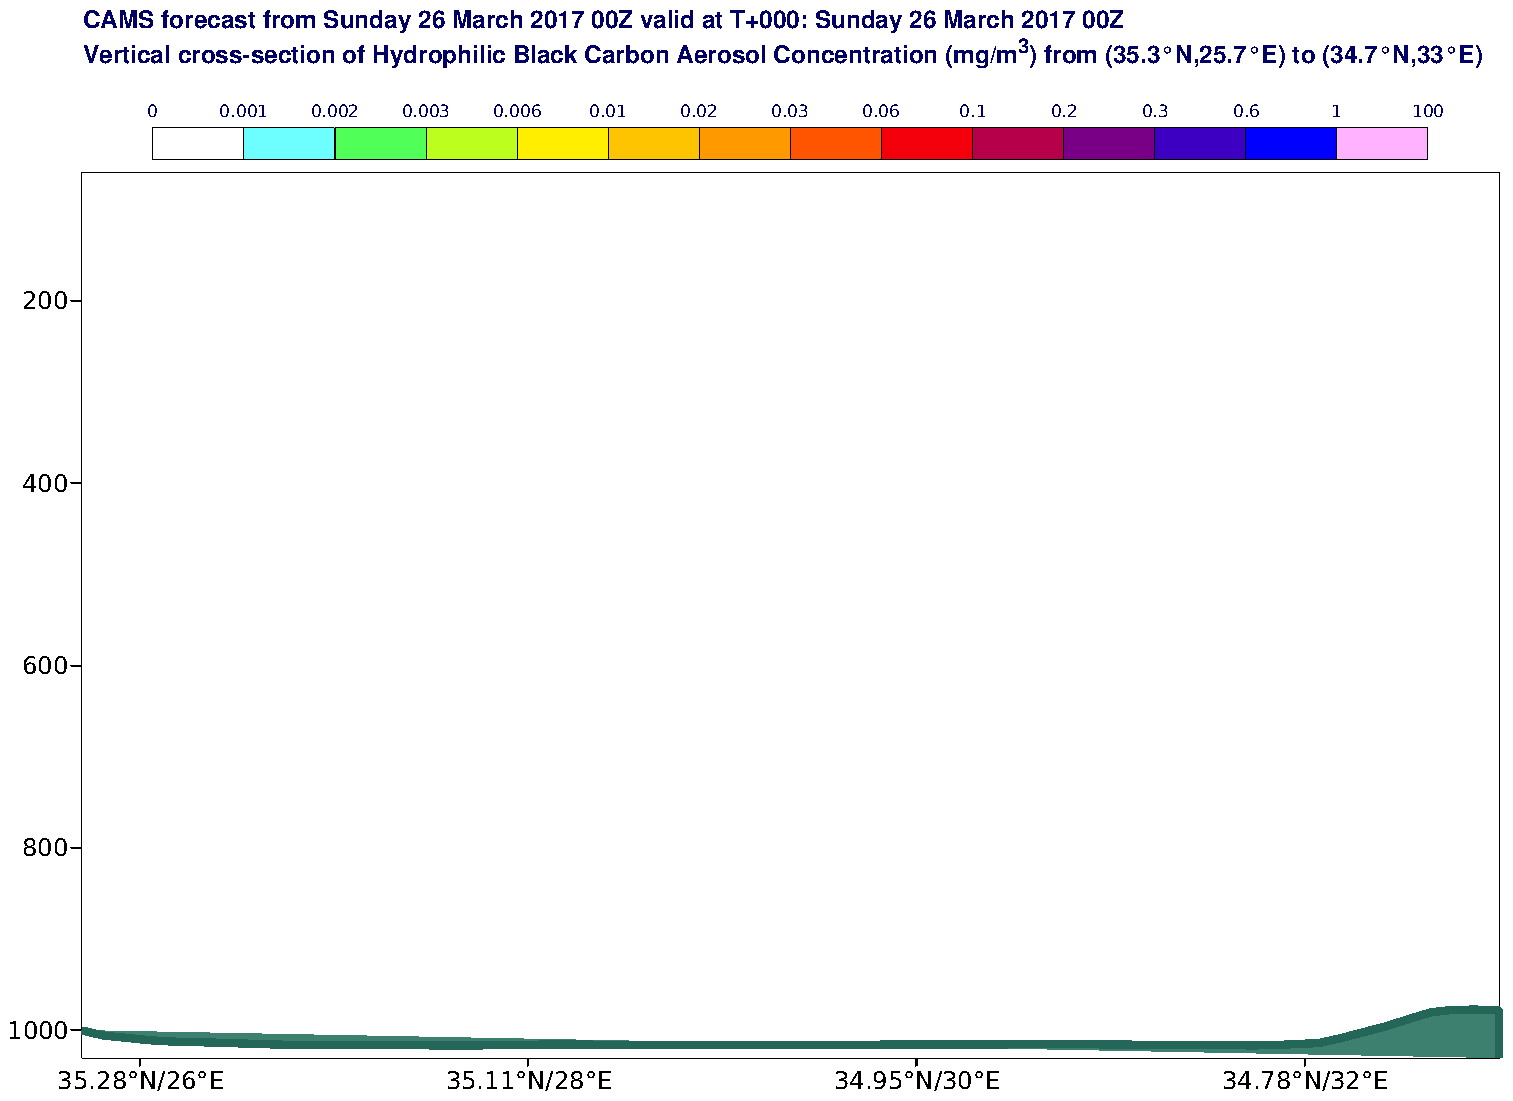 Vertical cross-section of Hydrophilic Black Carbon Aerosol Concentration (mg/m3) valid at T0 - 2017-03-26 00:00